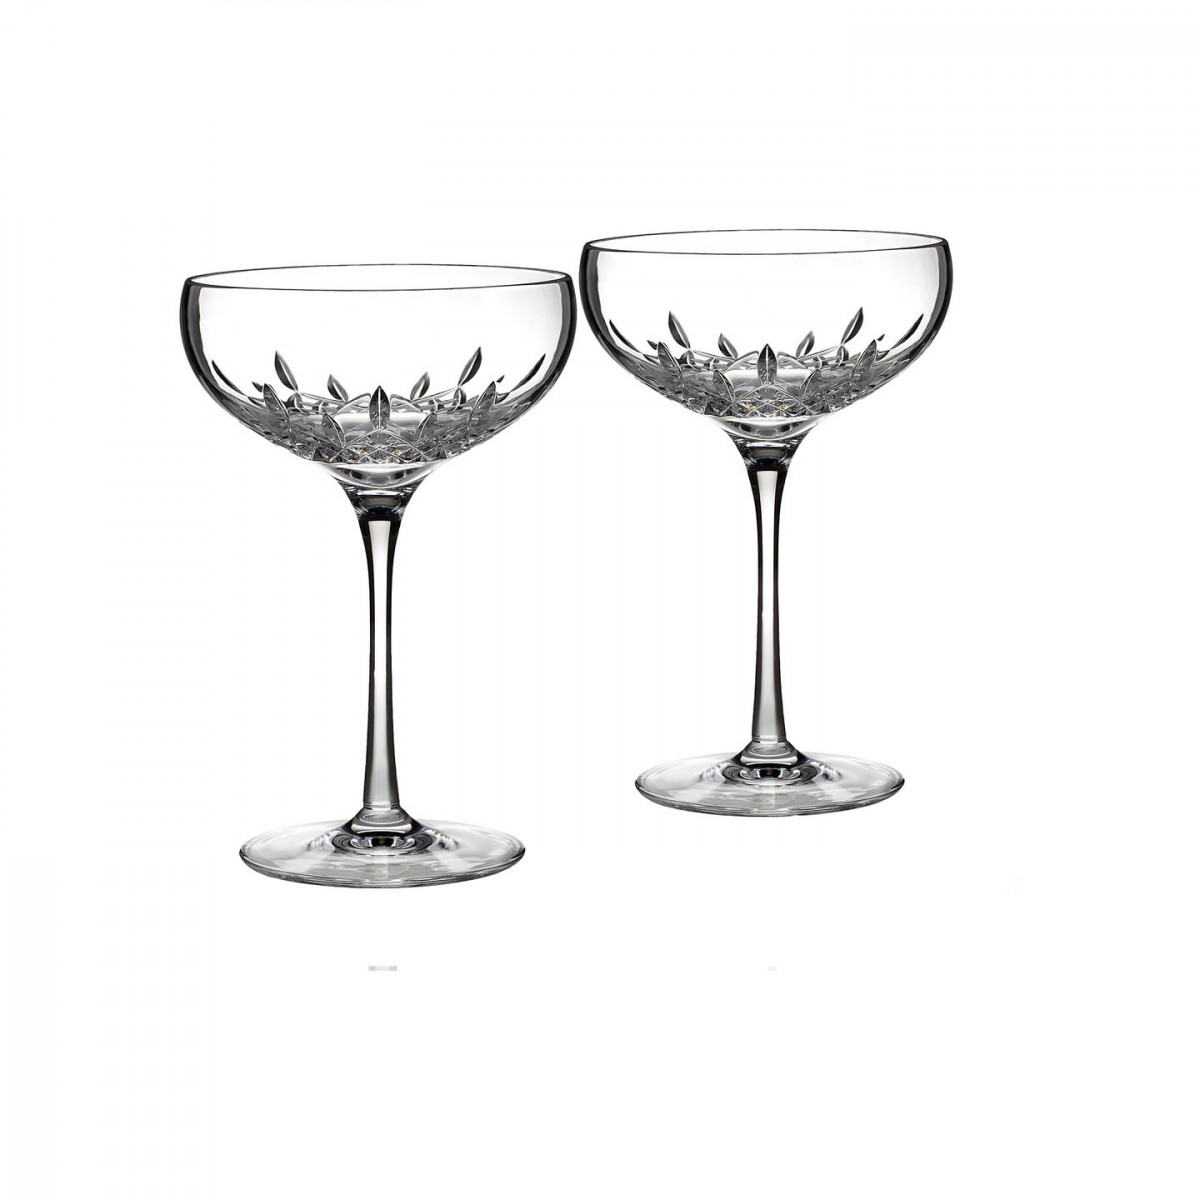 Waterford Crystal, Lismore Essence Saucer Champagne Coupe, Pair